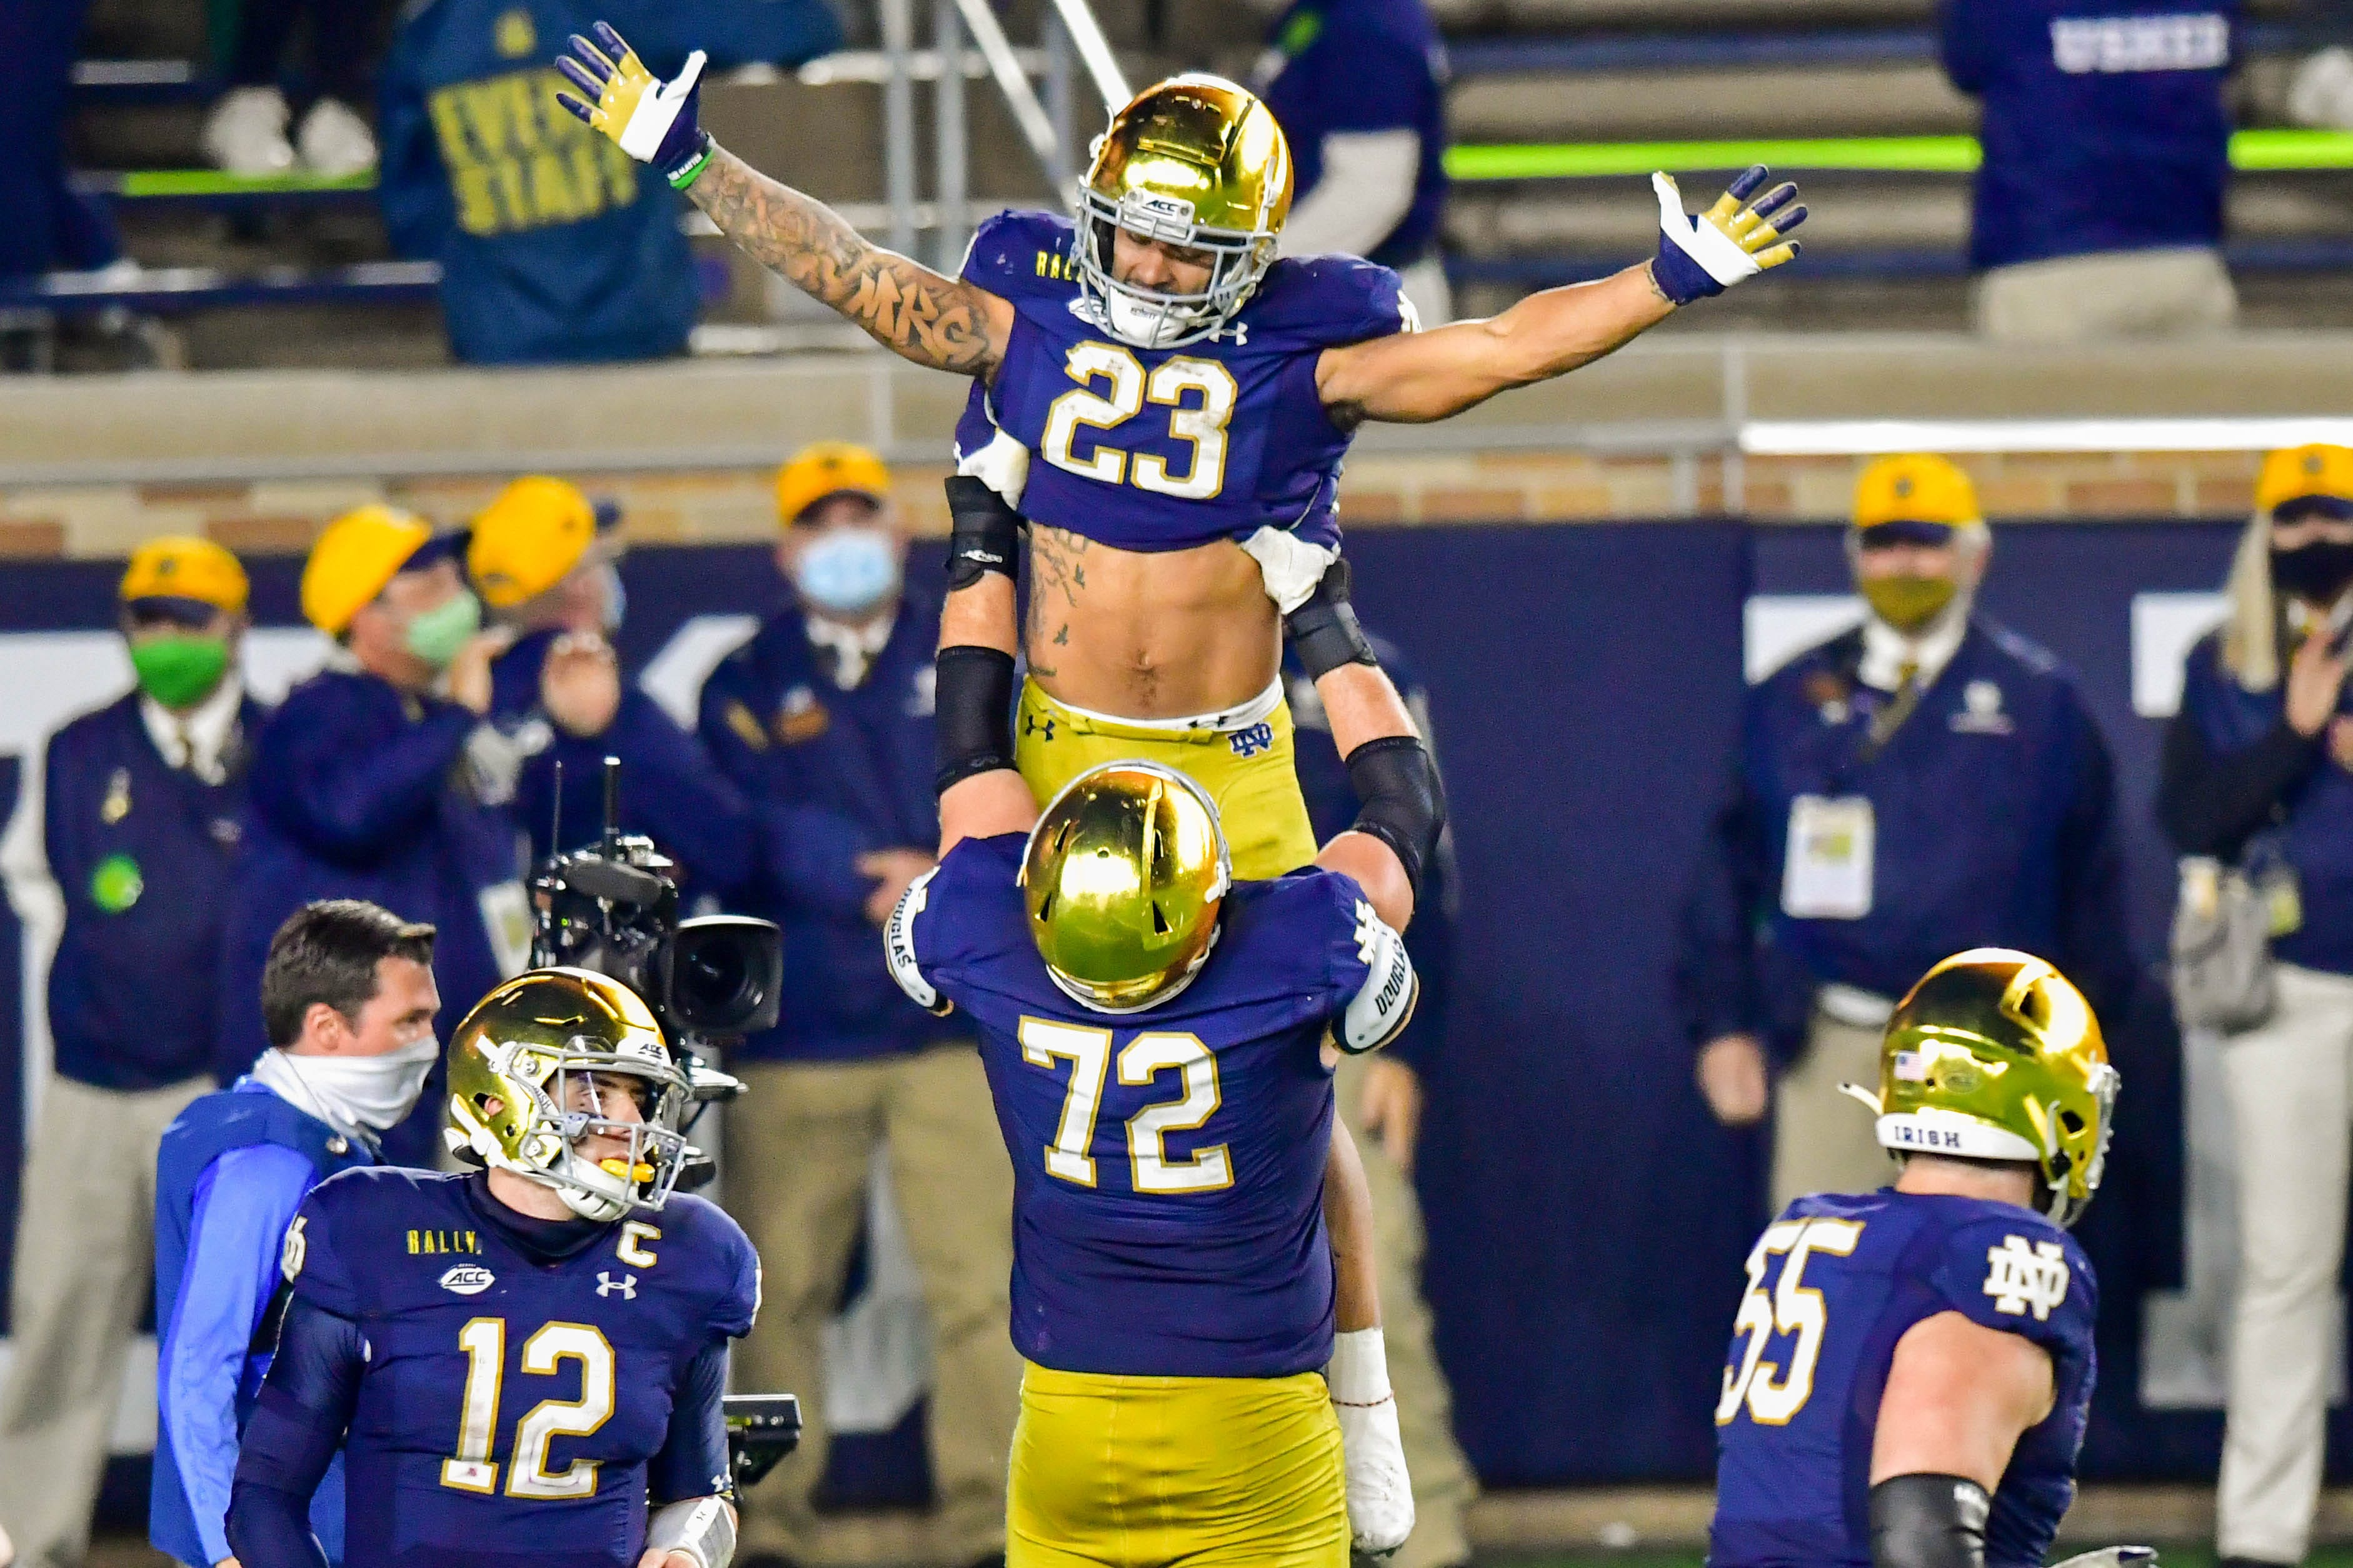 Opinion: Notre Dame 'made history' by upsetting No. 1 Clemson, but win is just first step